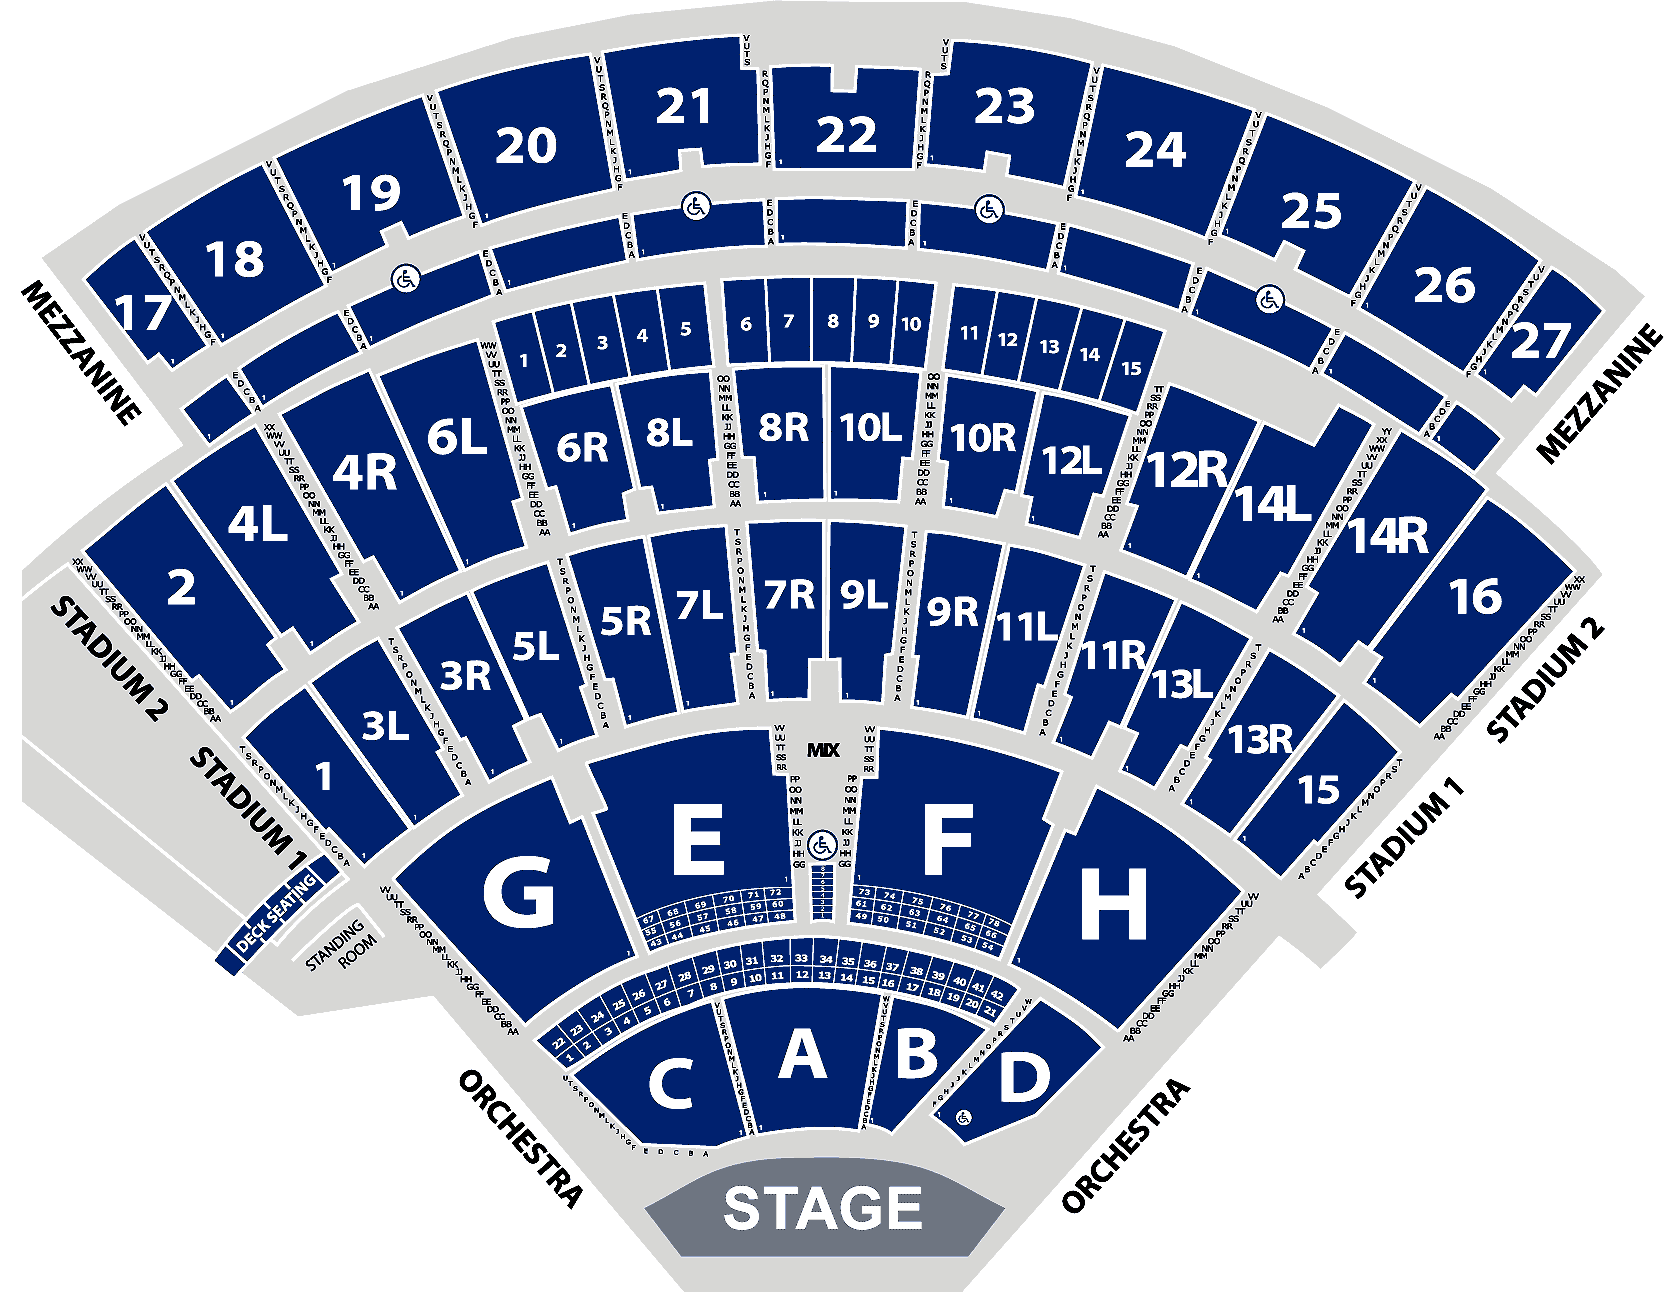 Seating Chart Enlarged 4k Aerial View Jones Beach Theater